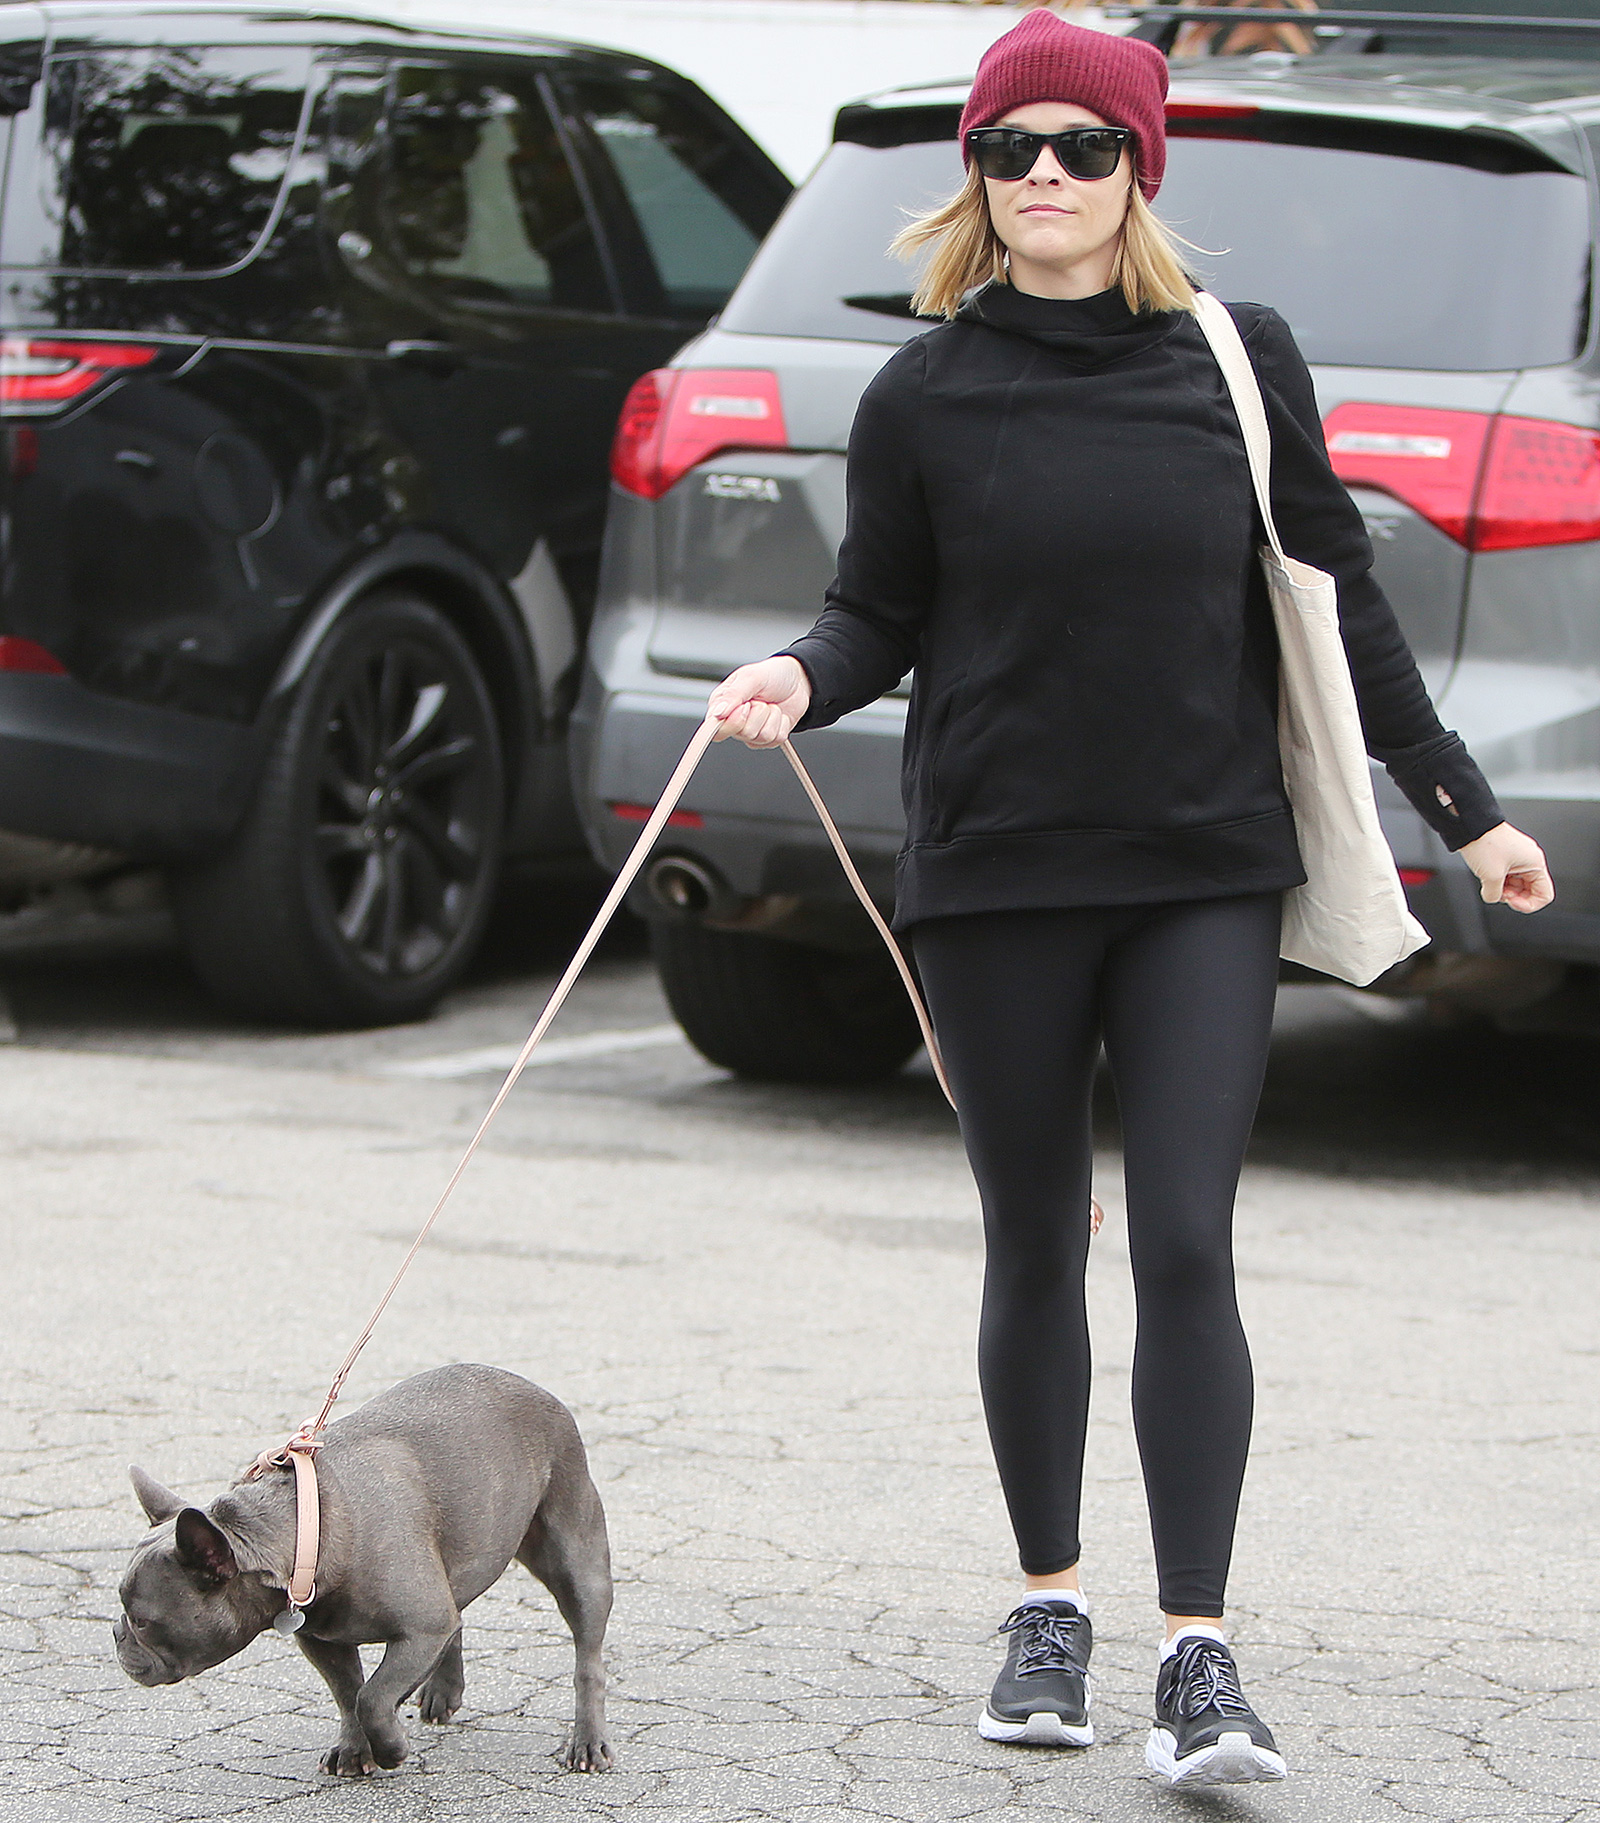 Reese Witherspoon goes shopping with her dog in Brentwood. Reese Witherspoon out and about, Los Angeles, USA - 08 Dec 2019